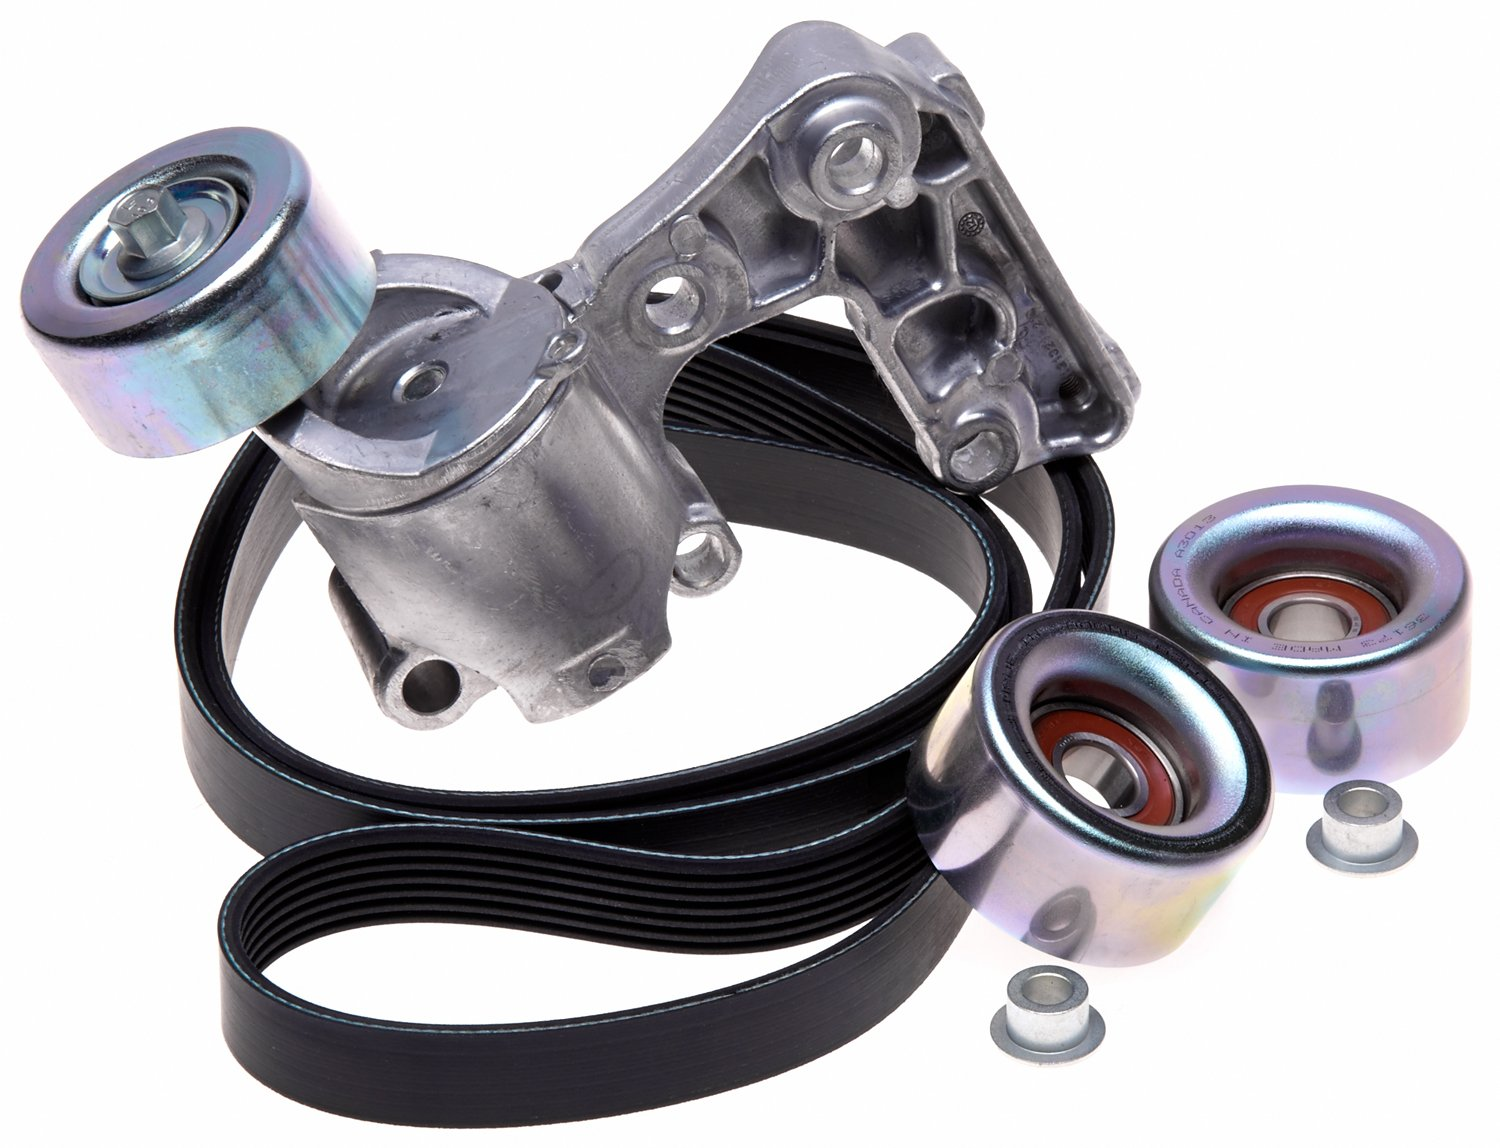 ACDelco ACK070822 Professional Accessory Belt Drive System Tensioner Kit by ACDelco